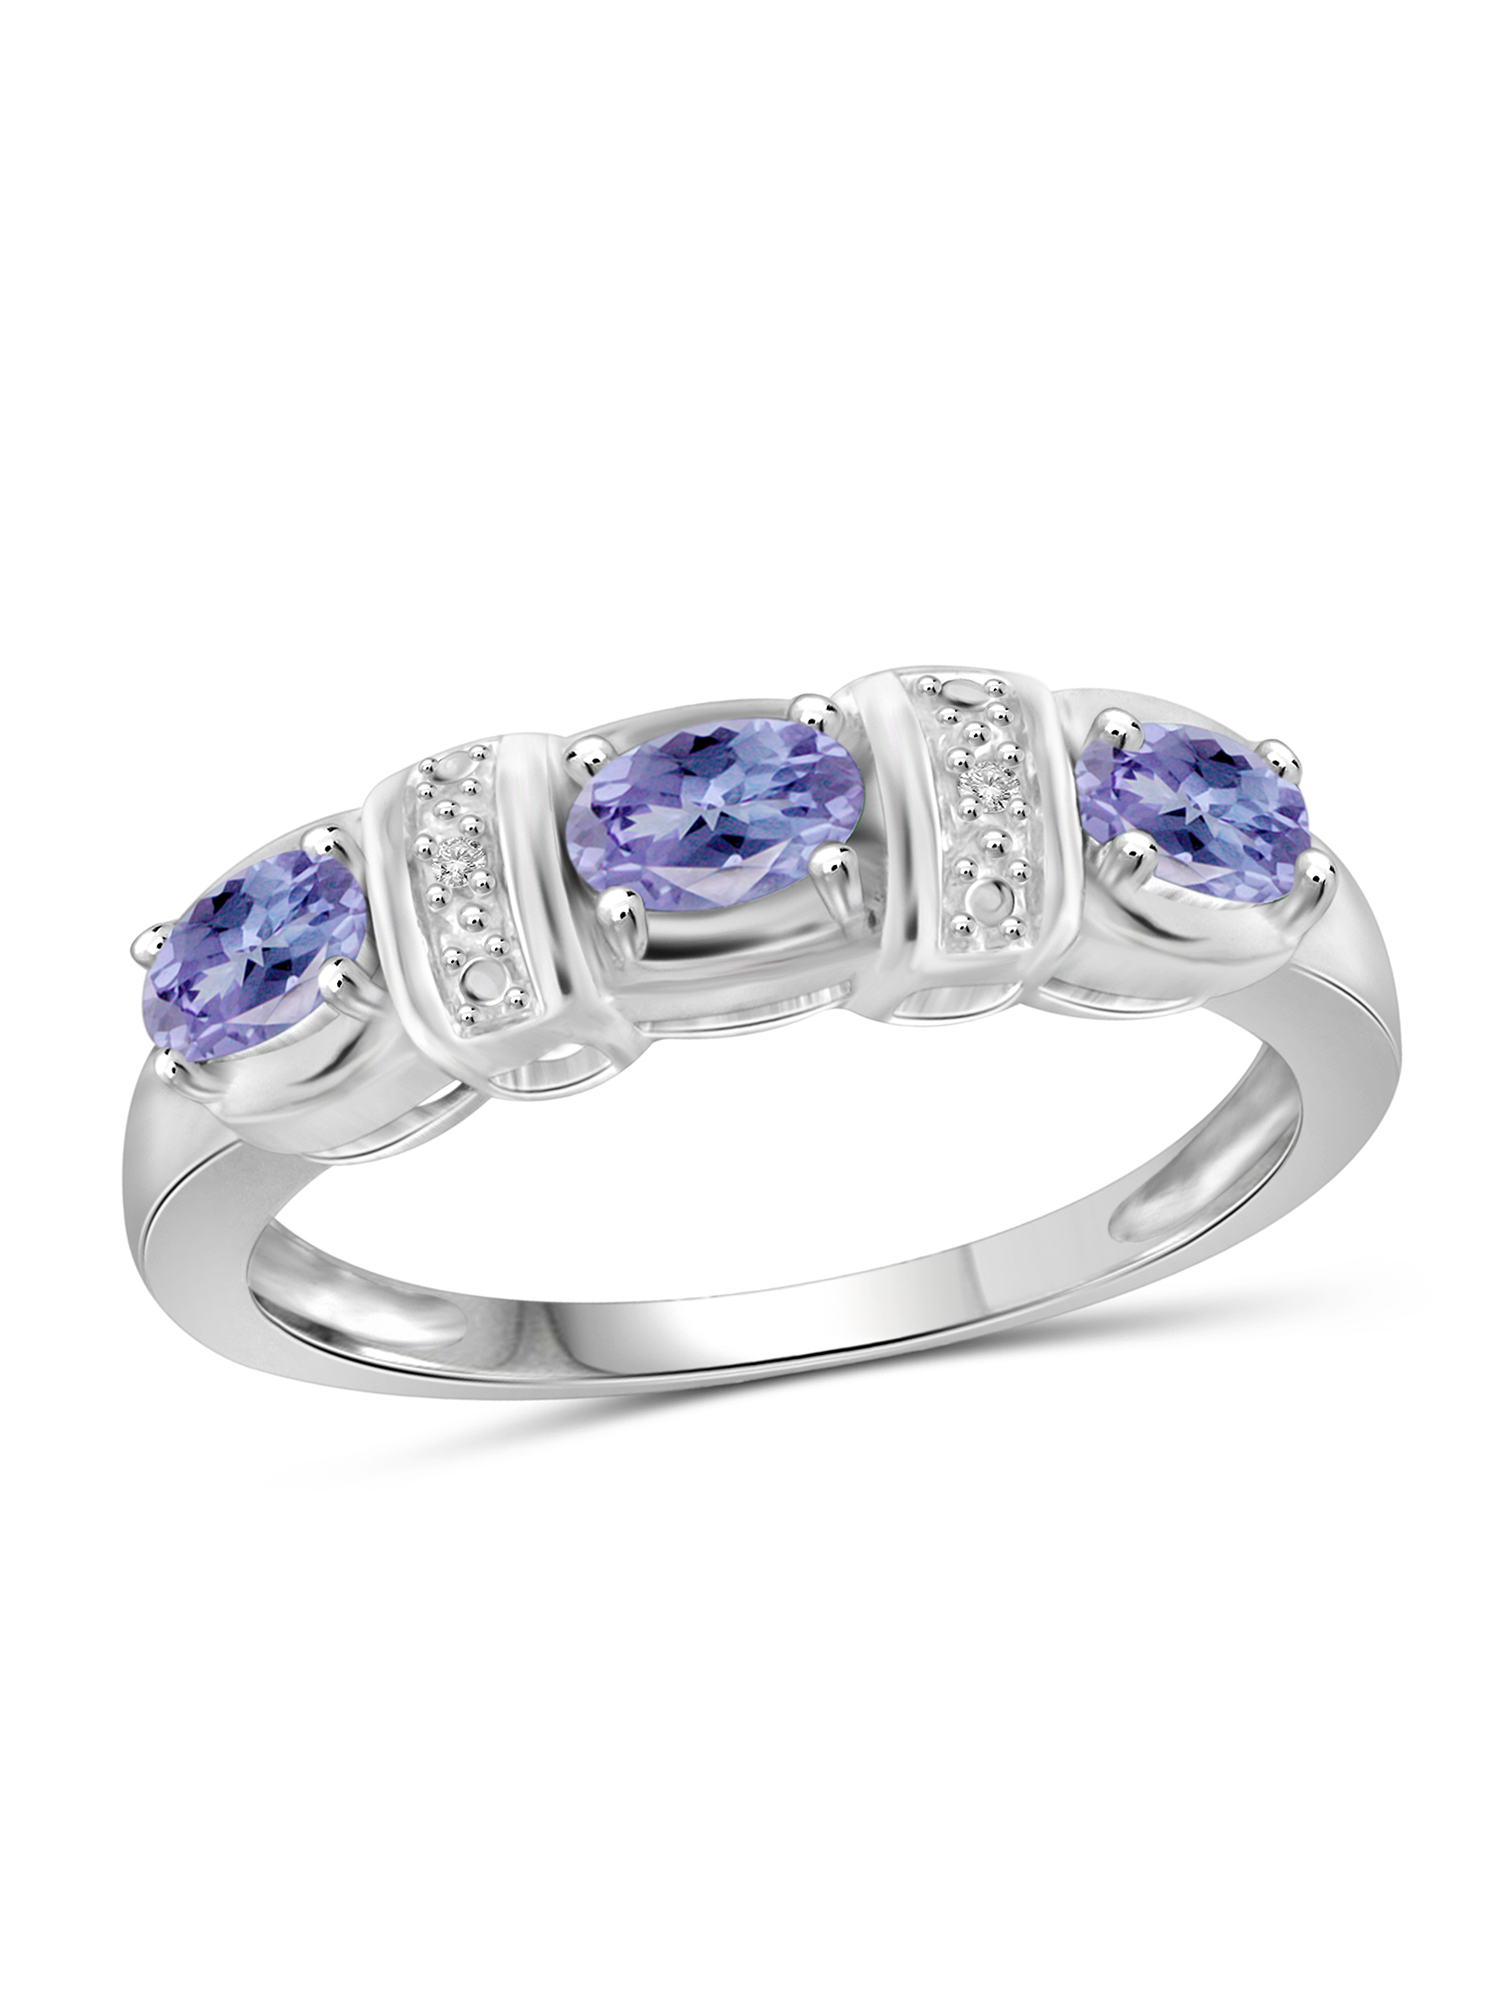 JewelersClub 0.72 Carat Tanzanite Gemstone and Accent White Diamond Ring by JewelersClub